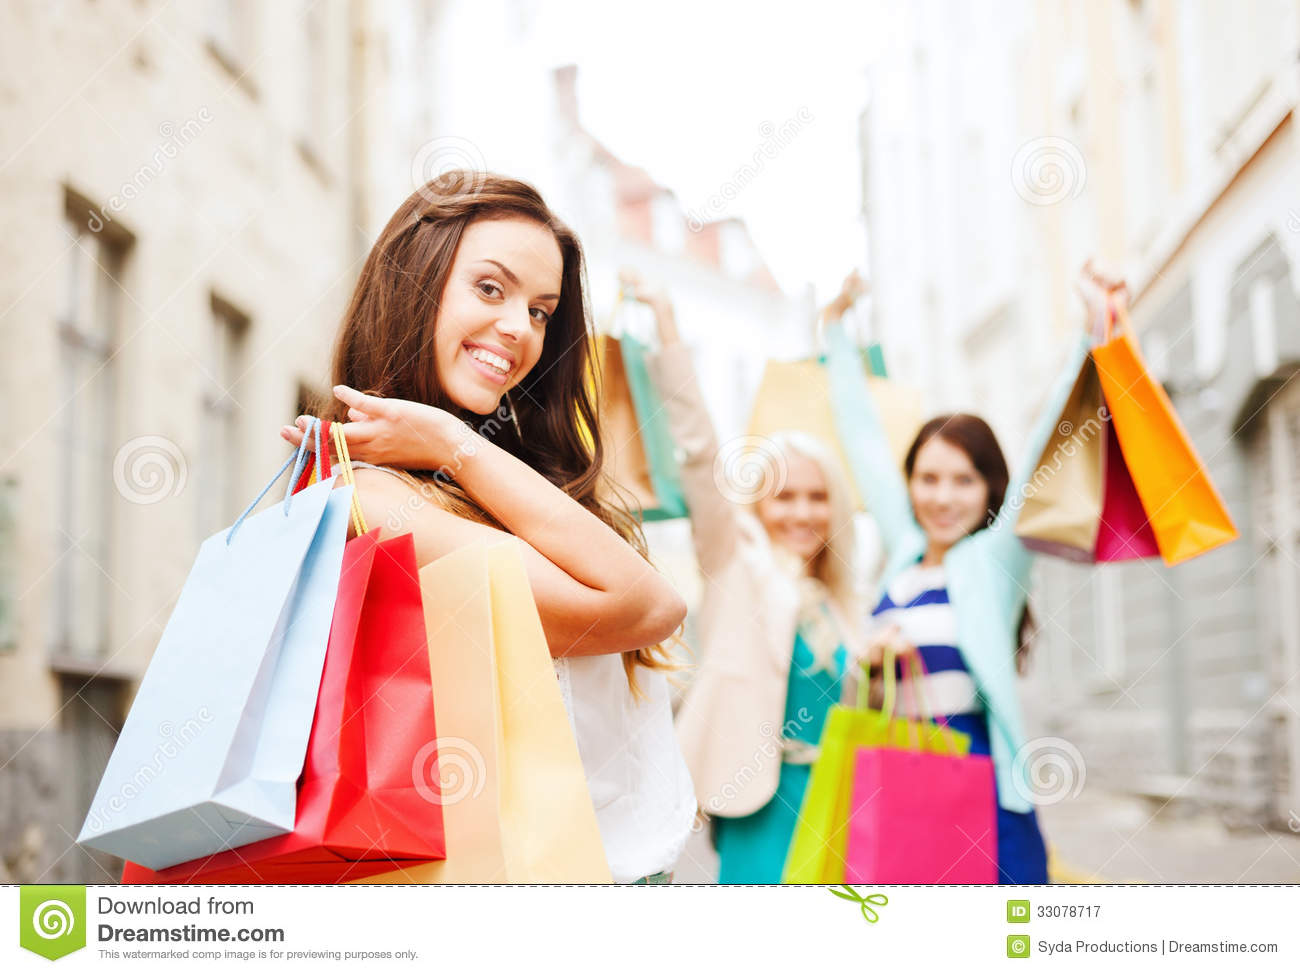 Girls With Shopping Bags, Stock Photos - Image: 10555533